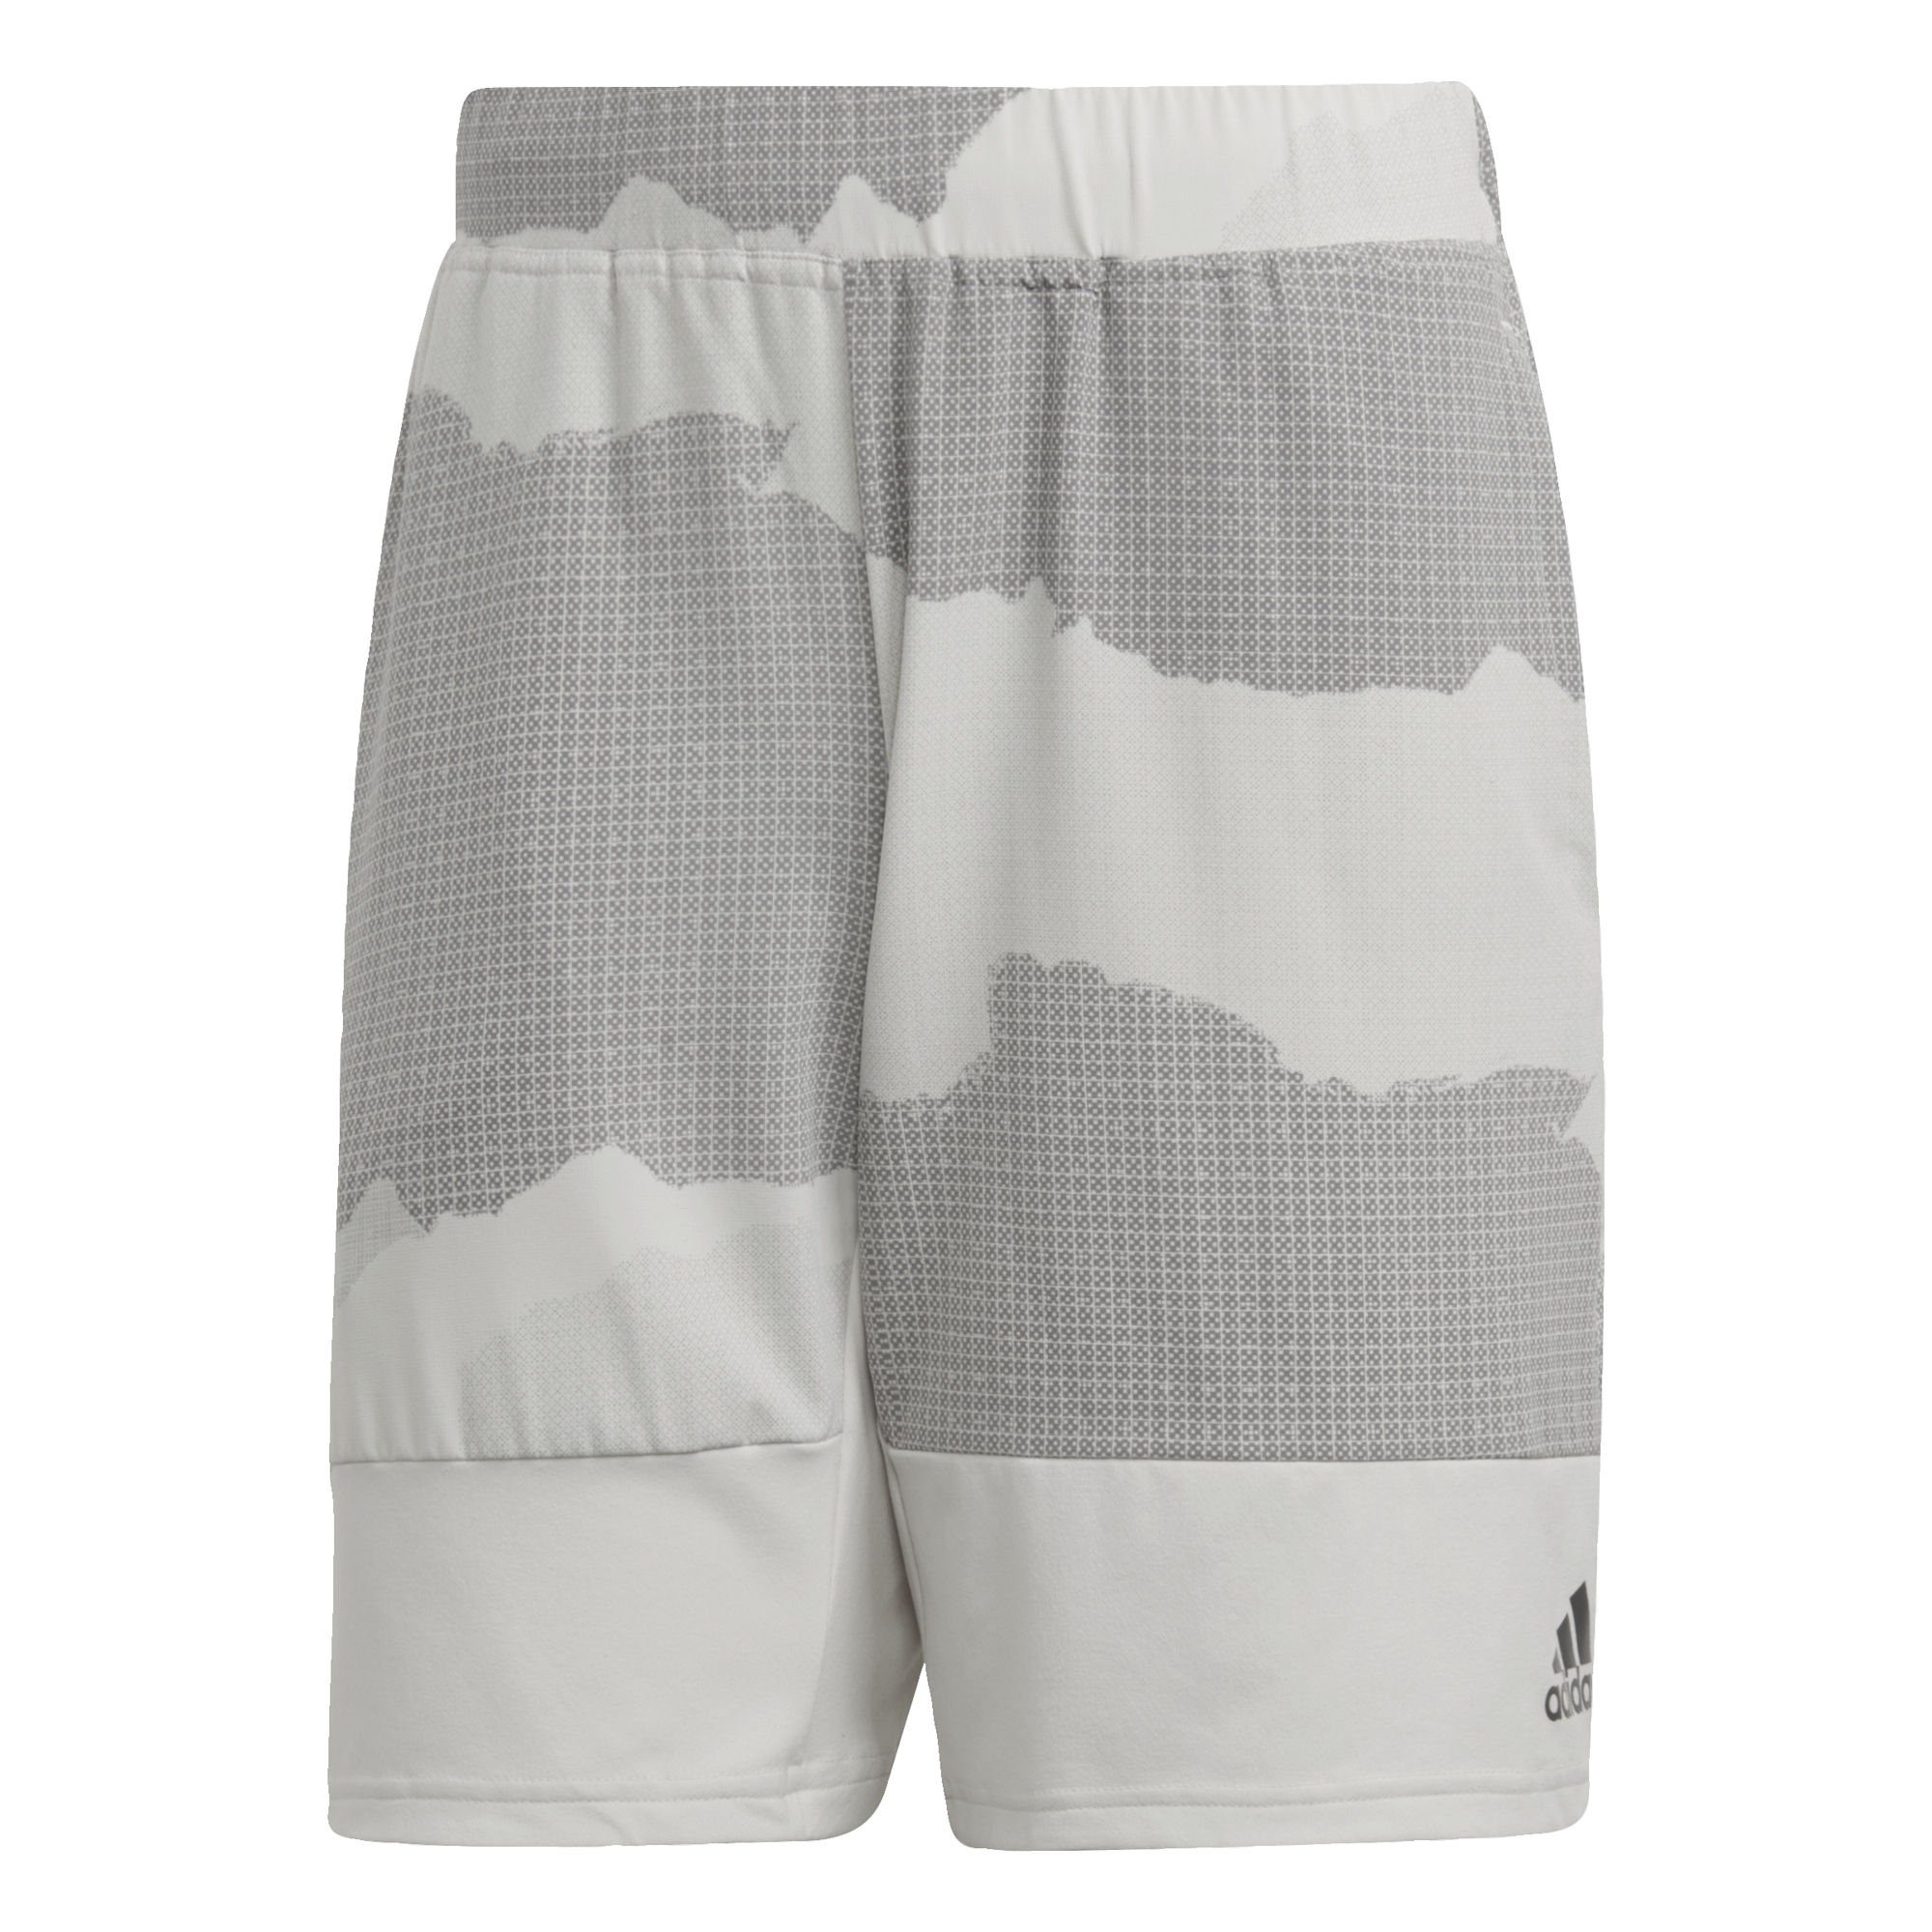 adidas Performance Shorts »4KRFT Tech 8 Inch Camouflage Graphic Shorts« Clima online kaufen | OTTO